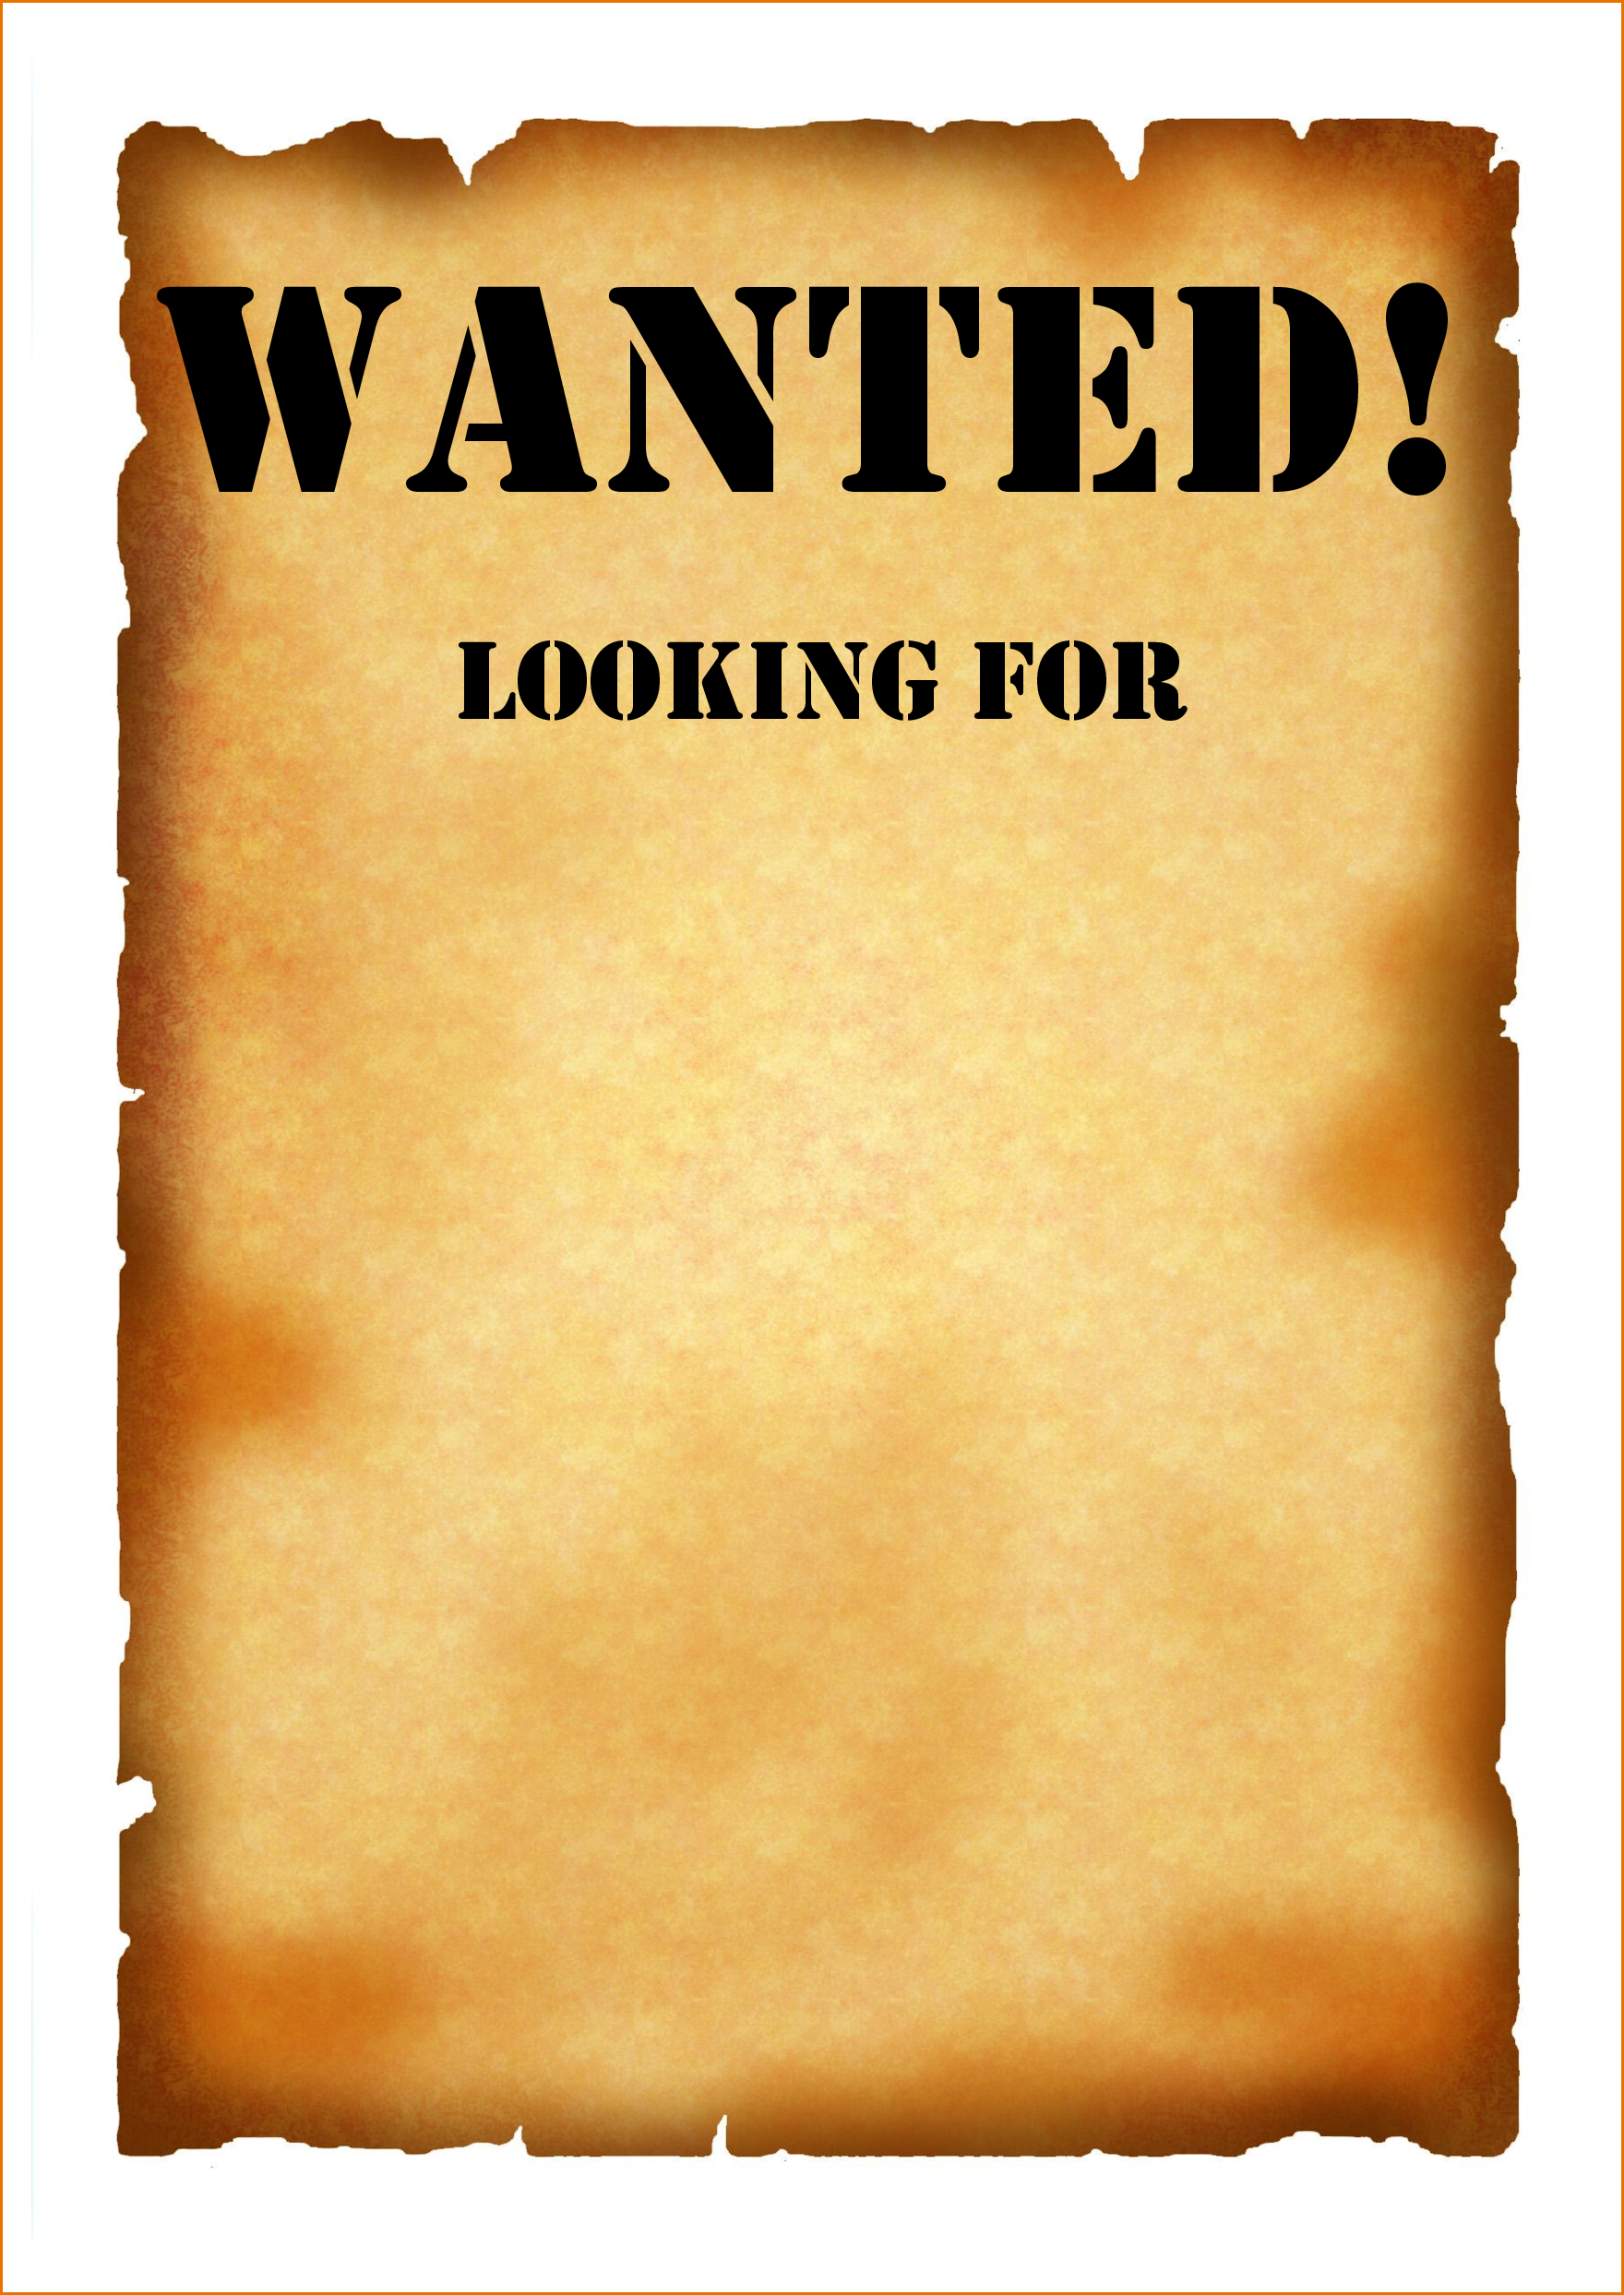 clip art wanted poster clipart best